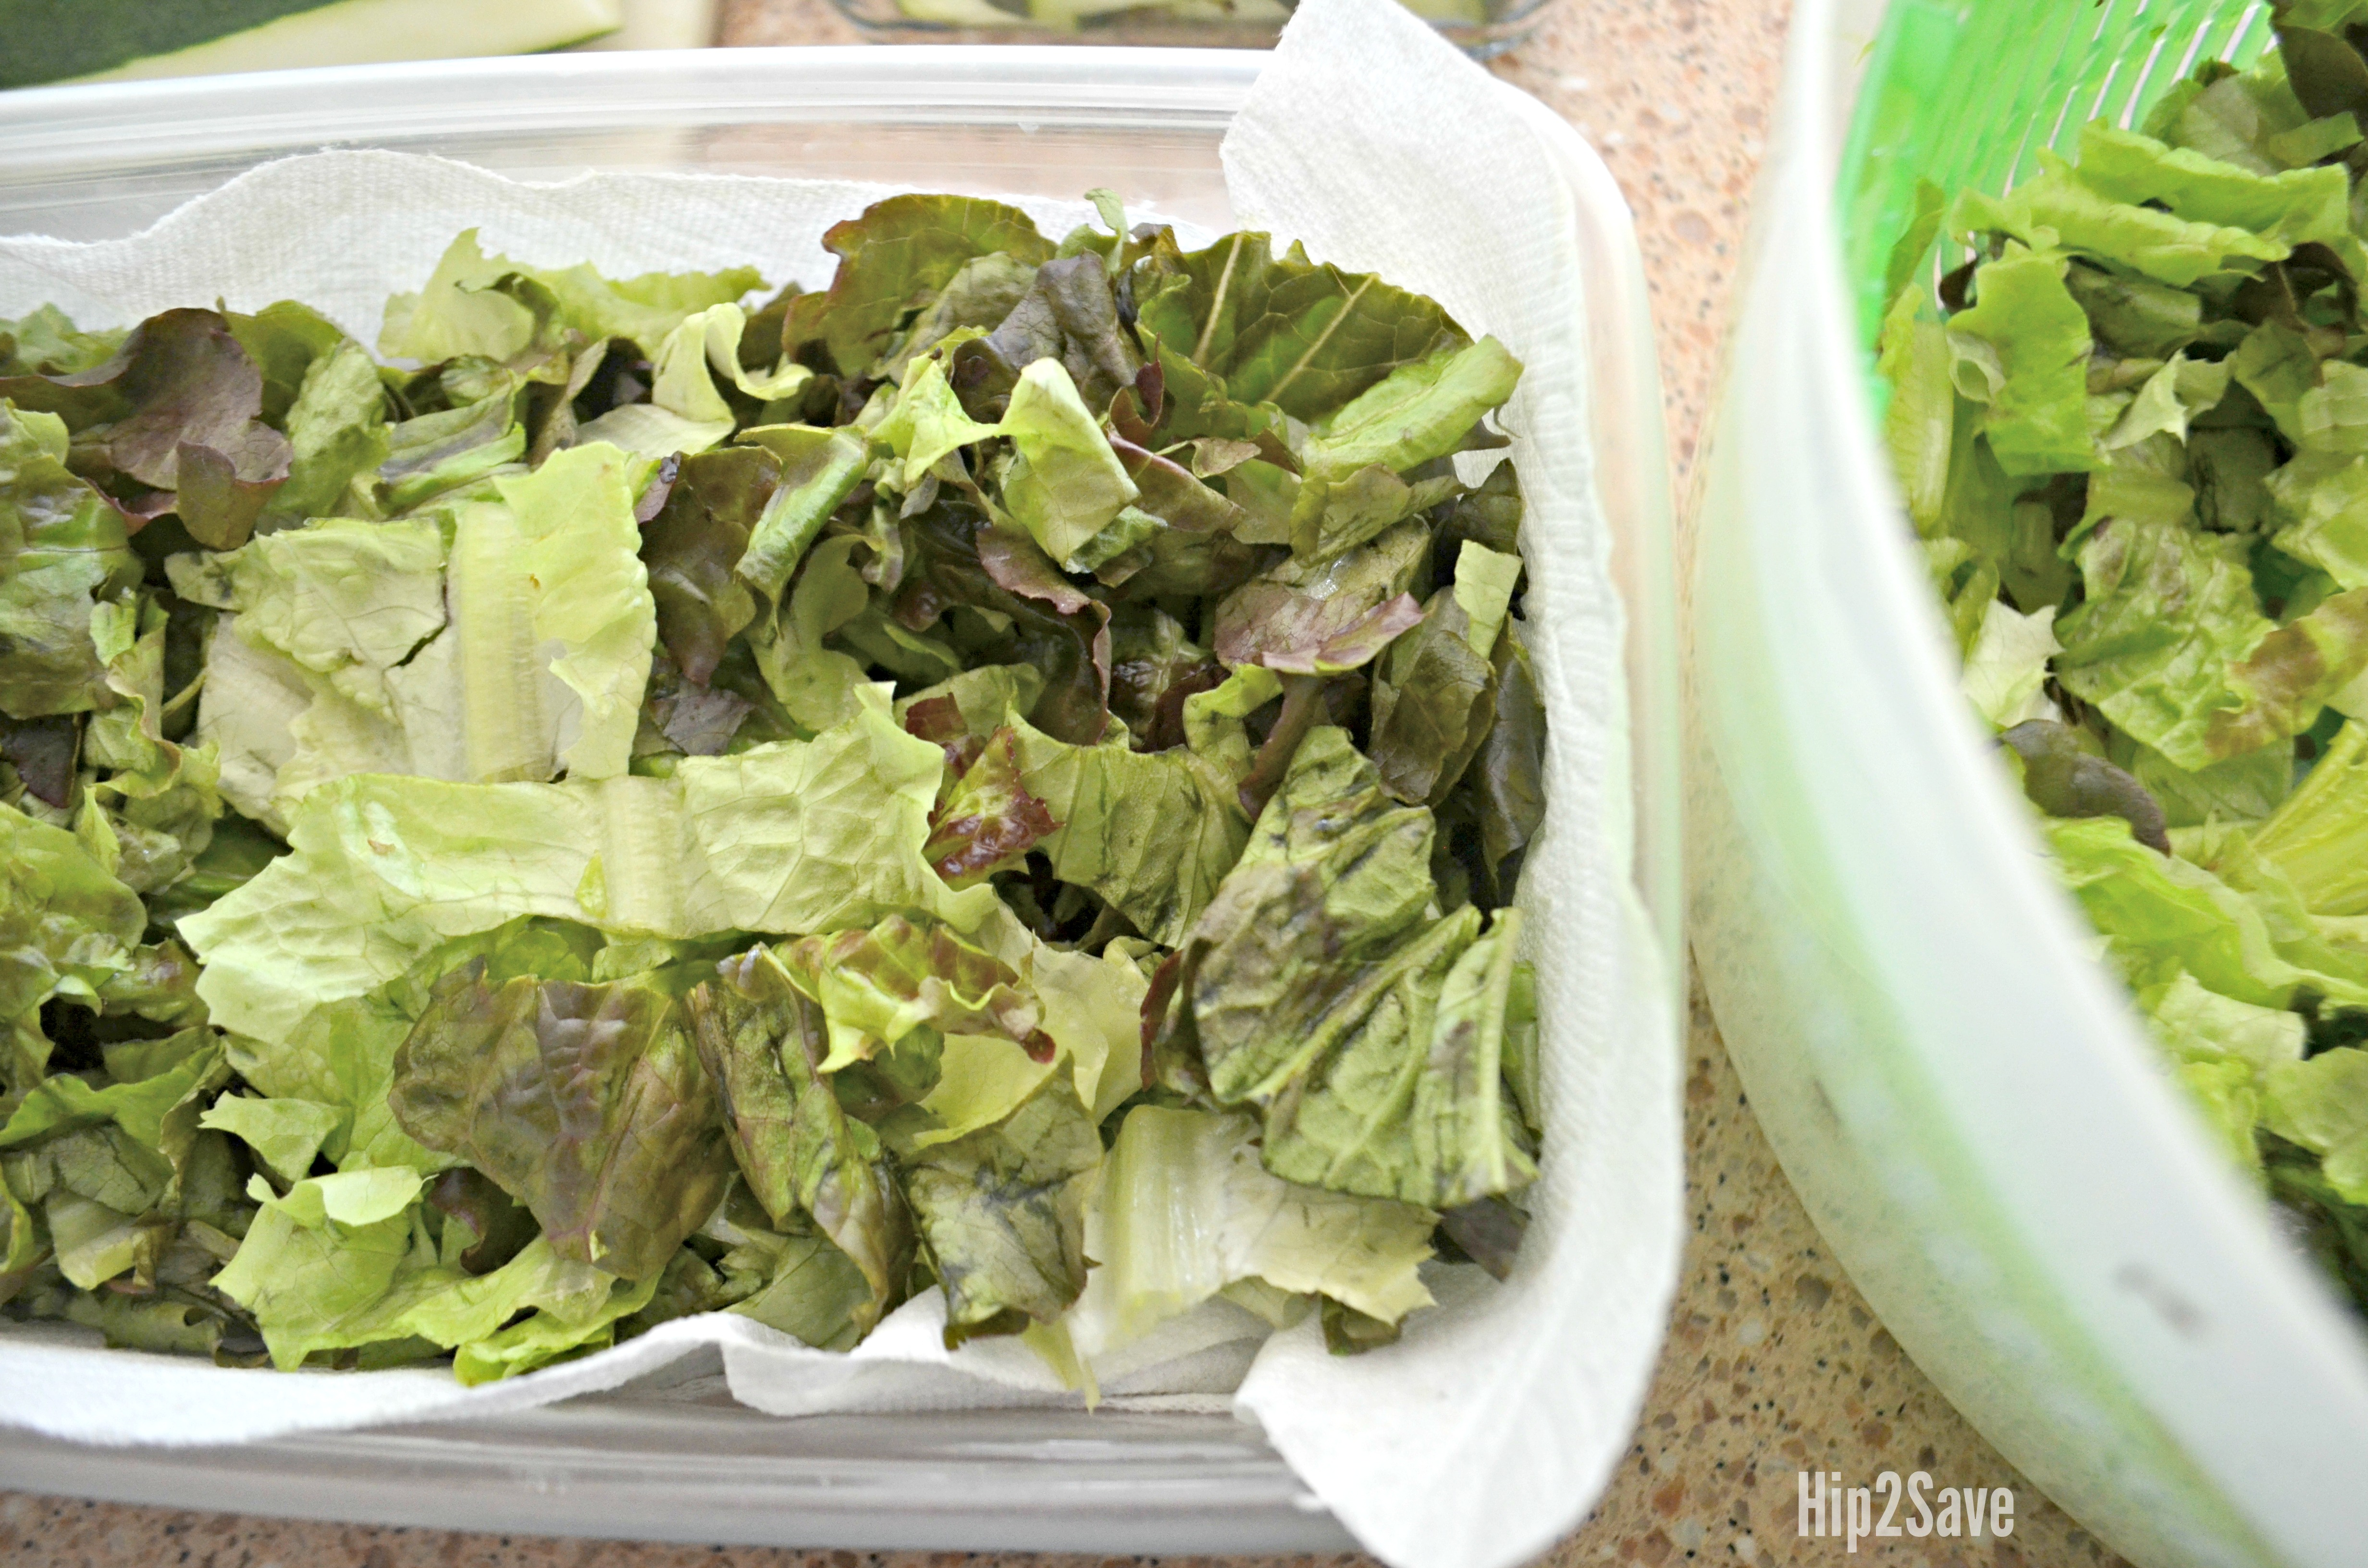 Keep lettuce fresh longer by lining a container with paper towels.